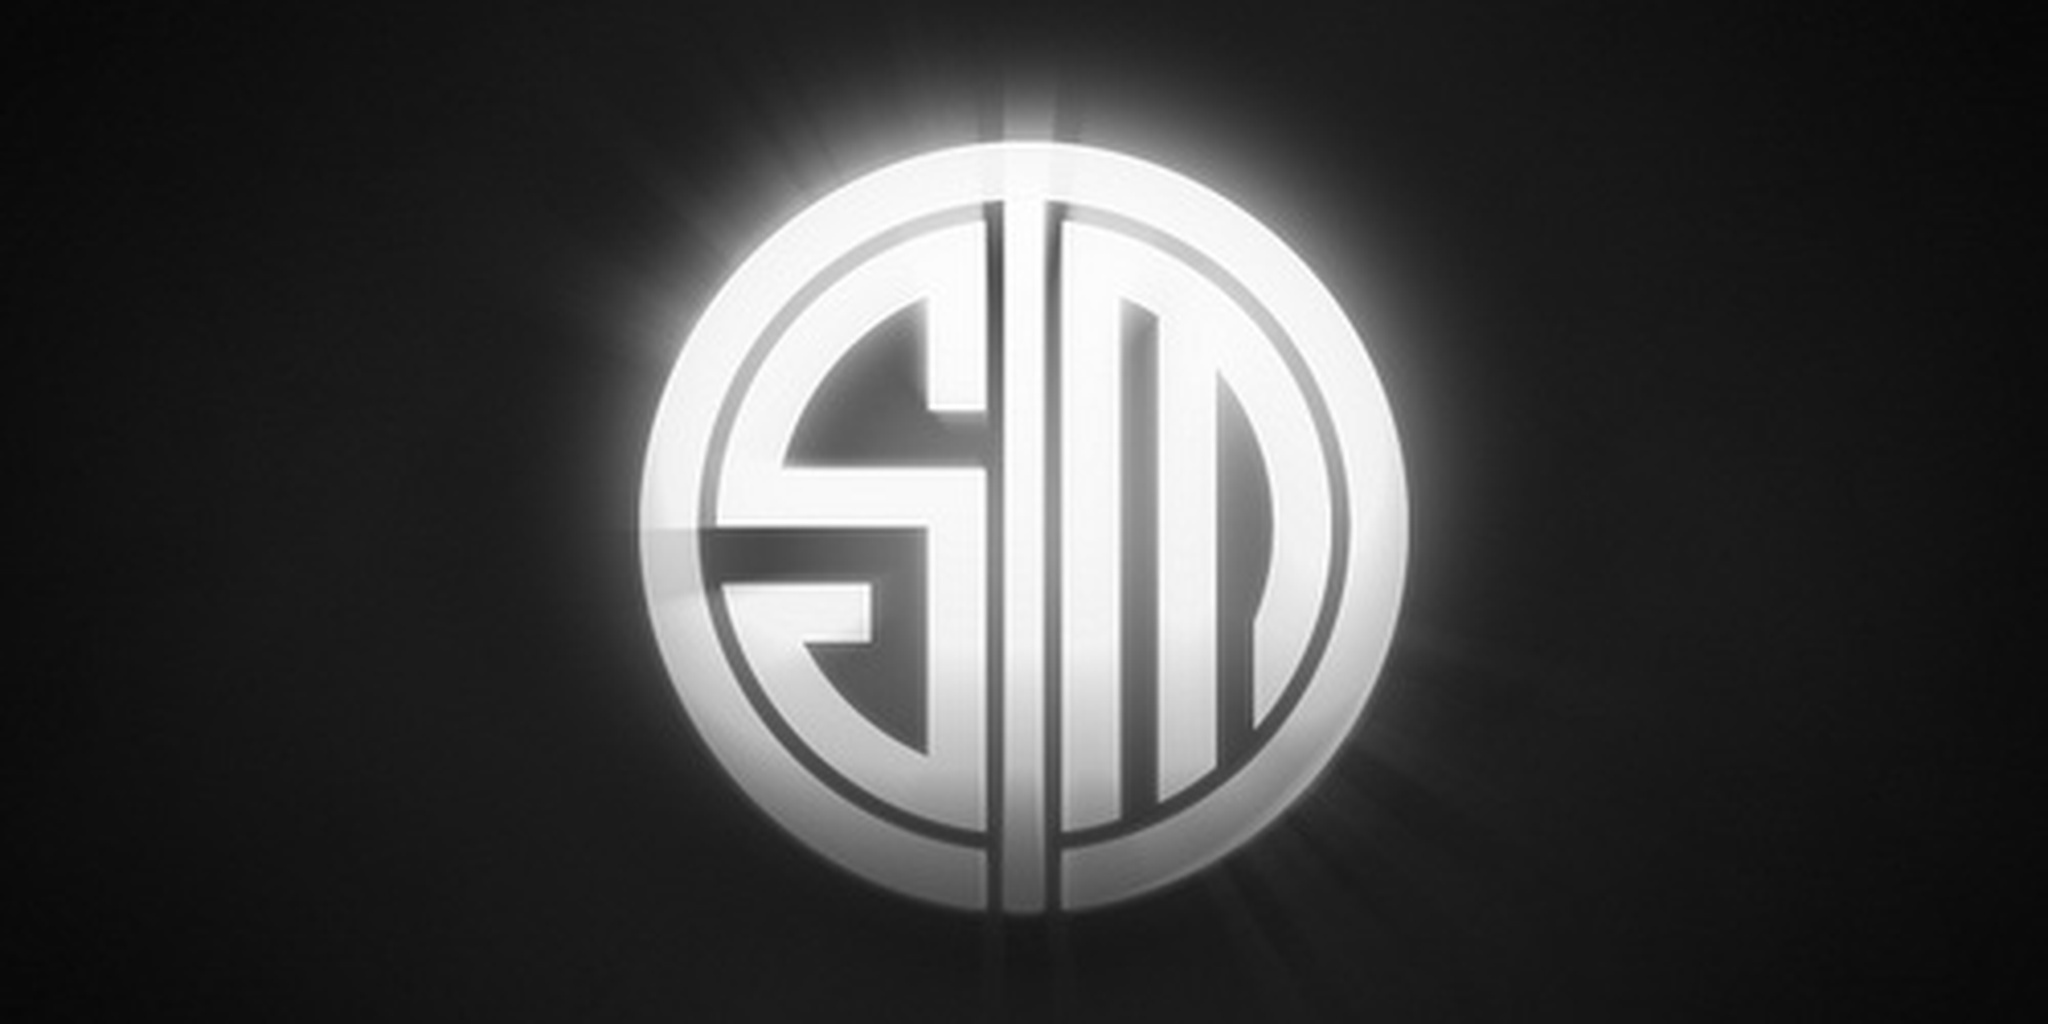 Hackers claim they still have access to SoloMid servers